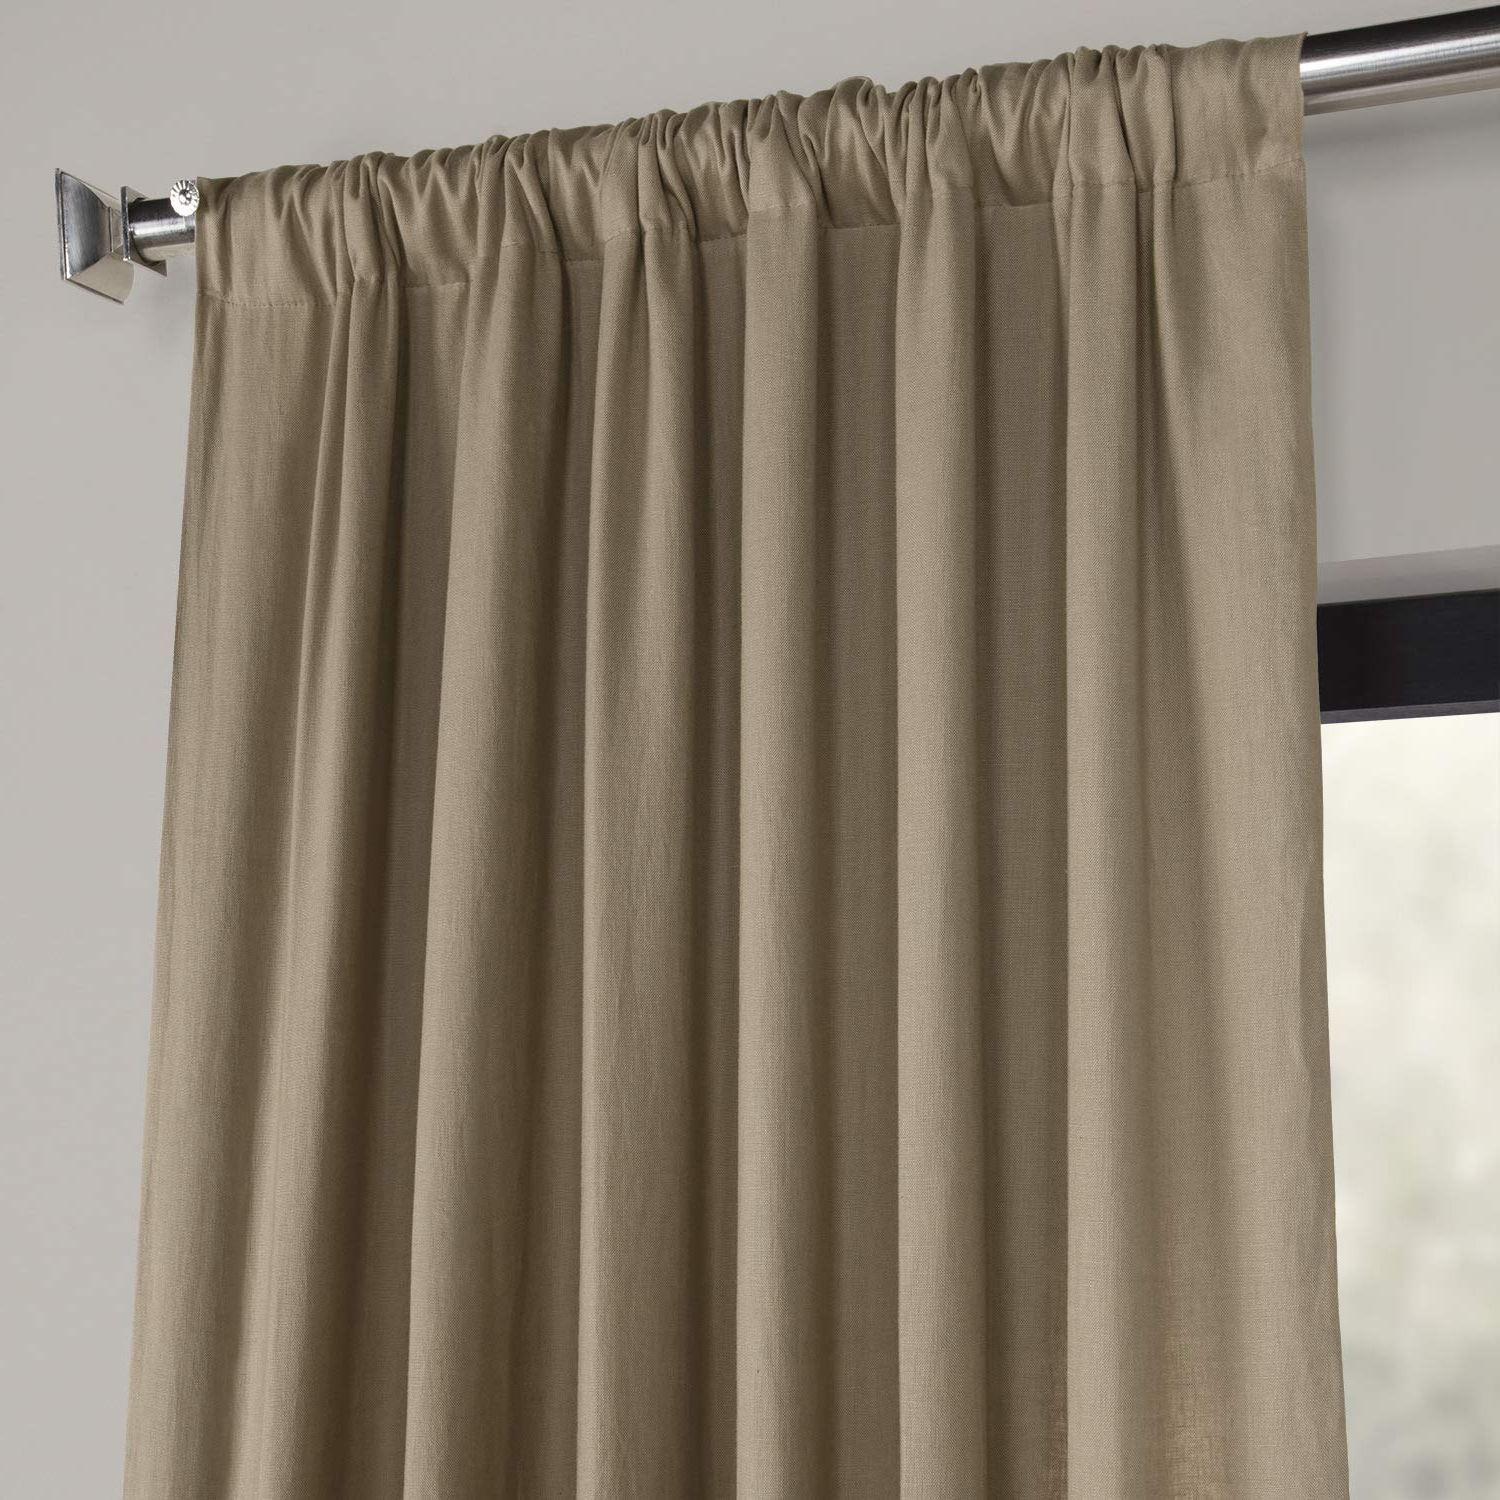 2020 Ln Xs1703 96 French Linen Curtain, Flax Beige, 50 X 96 For French Linen Lined Curtain Panels (View 9 of 20)